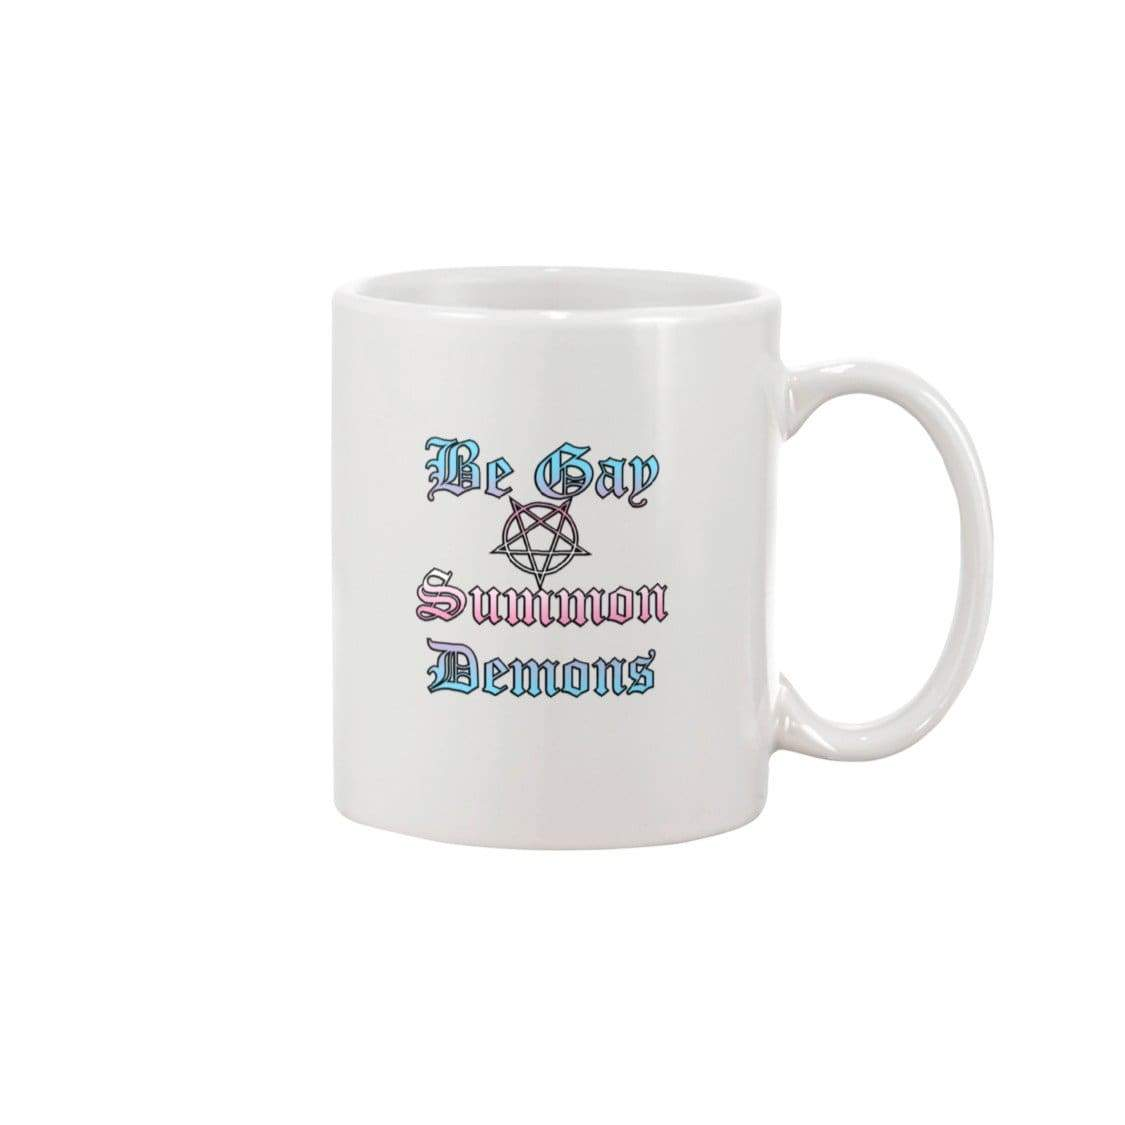 Dice Priori Be Gay Summon Demons Trans 11oz Coffee Mug - White / 11OZ - Mugs